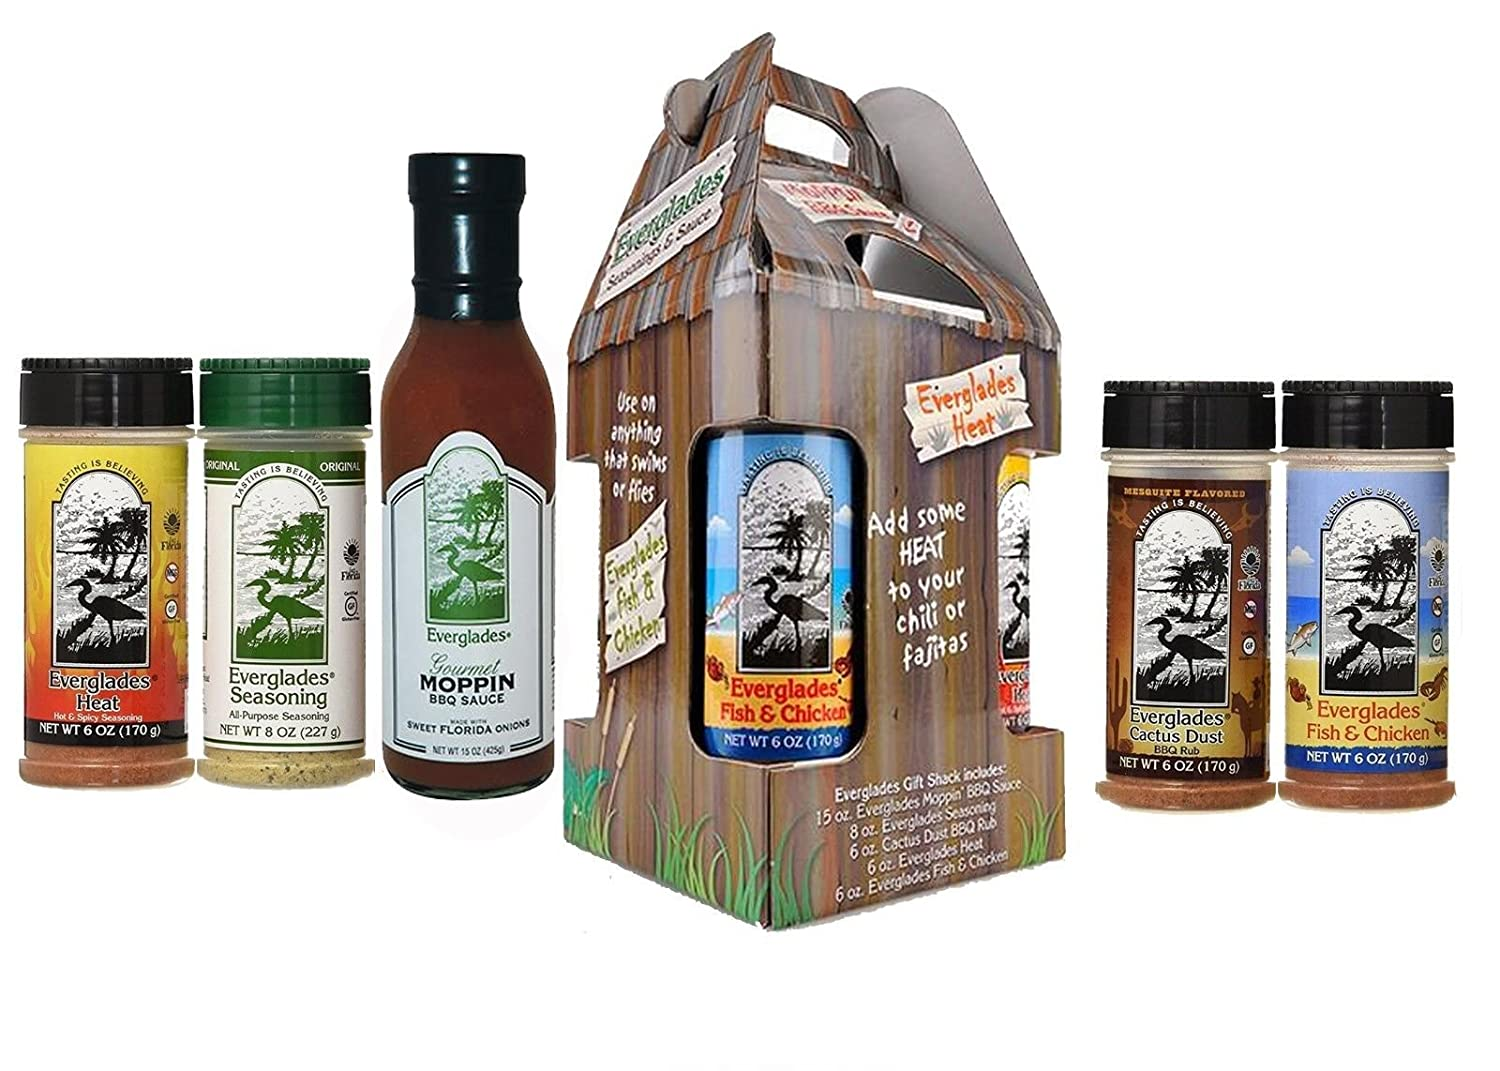 specialty shop Everglades Seasoning Spice In a popularity Shack 4 Bundl Spices and Sauce Moppin